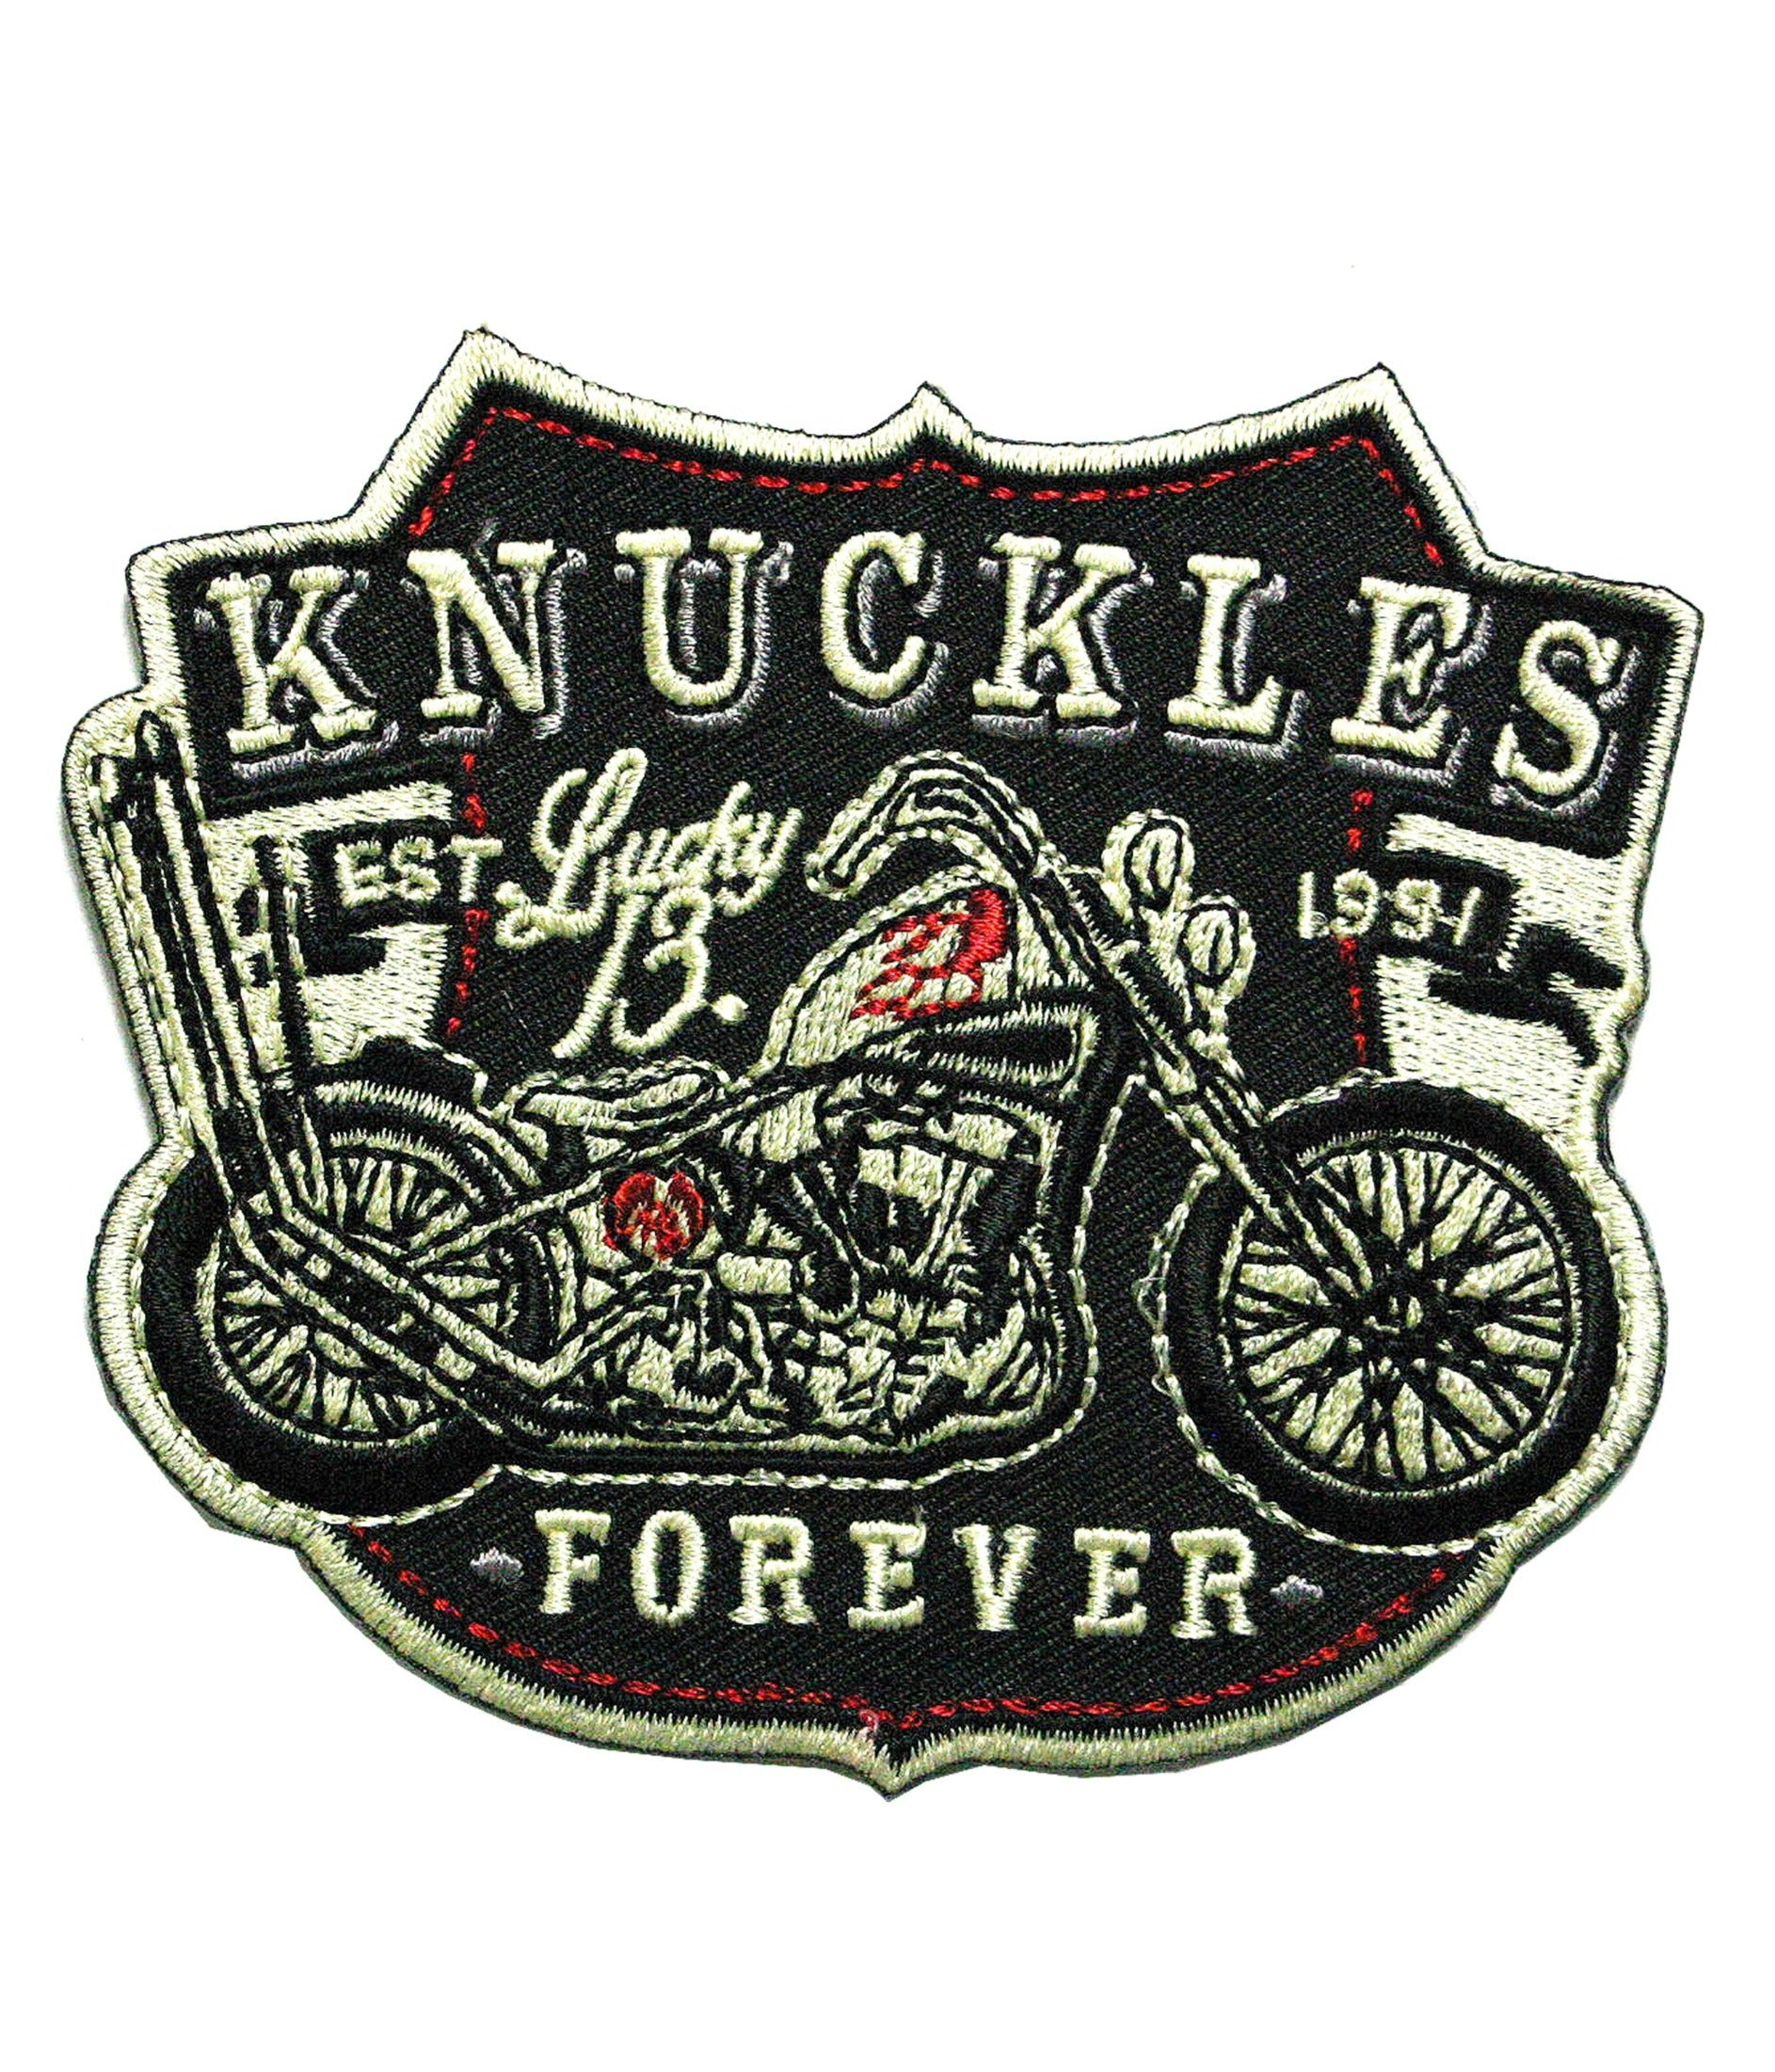 The KNUCKLES Patch